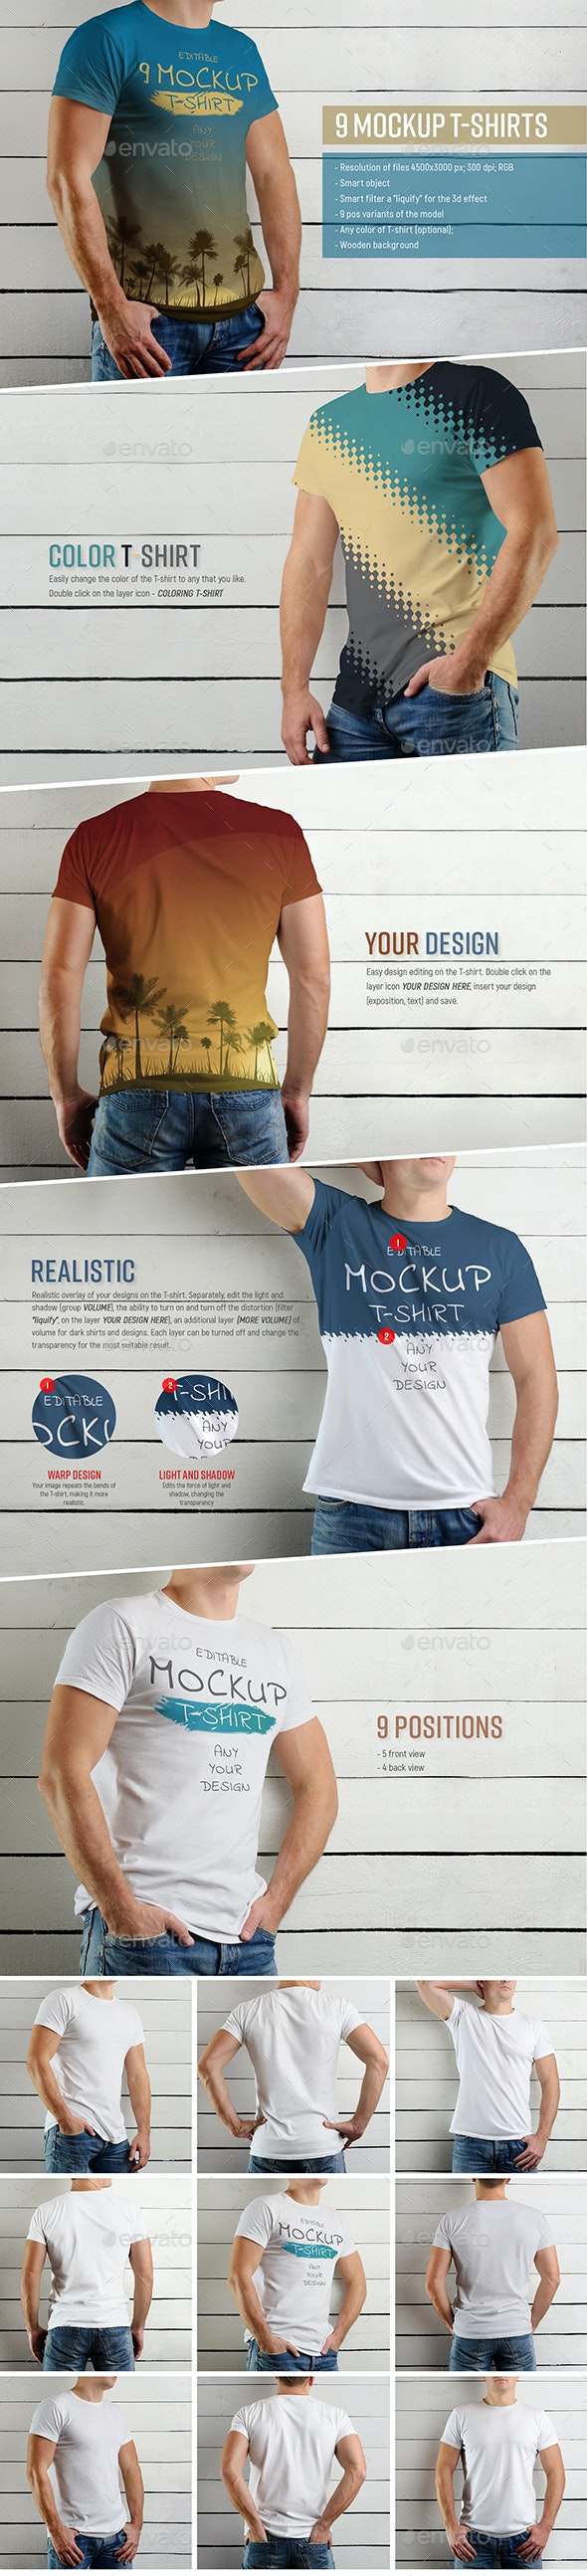 9 Mockup of a White T-Shirt on a Man on a Wooden Background - Product Mock-Ups Graphics